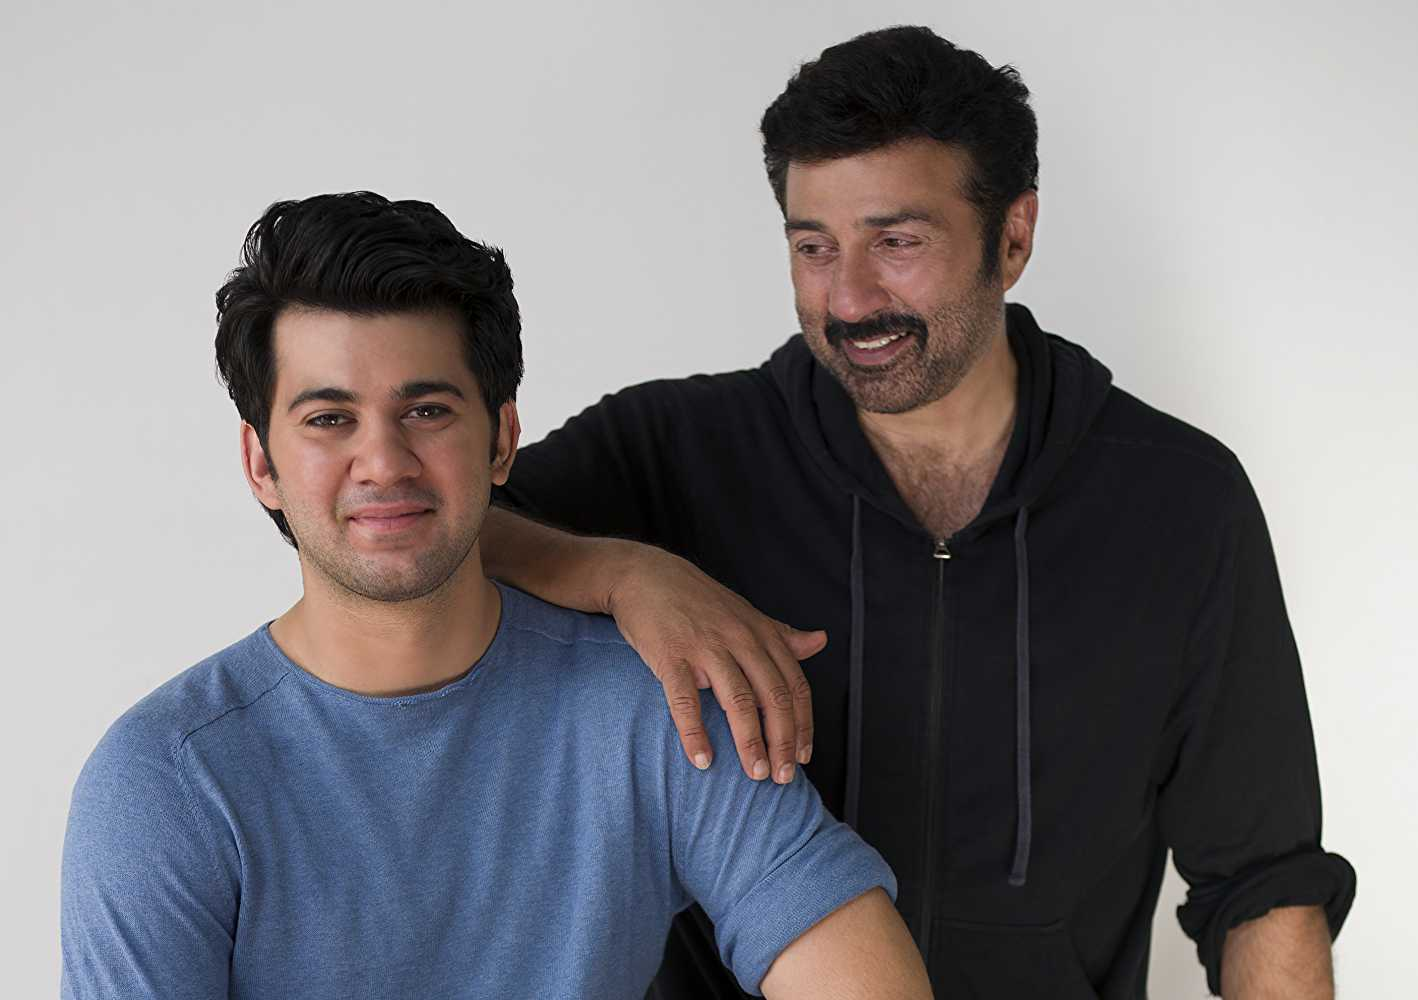 A still of Karan Deol and Sunny Deol from Pal Pal Dil Ke Paas